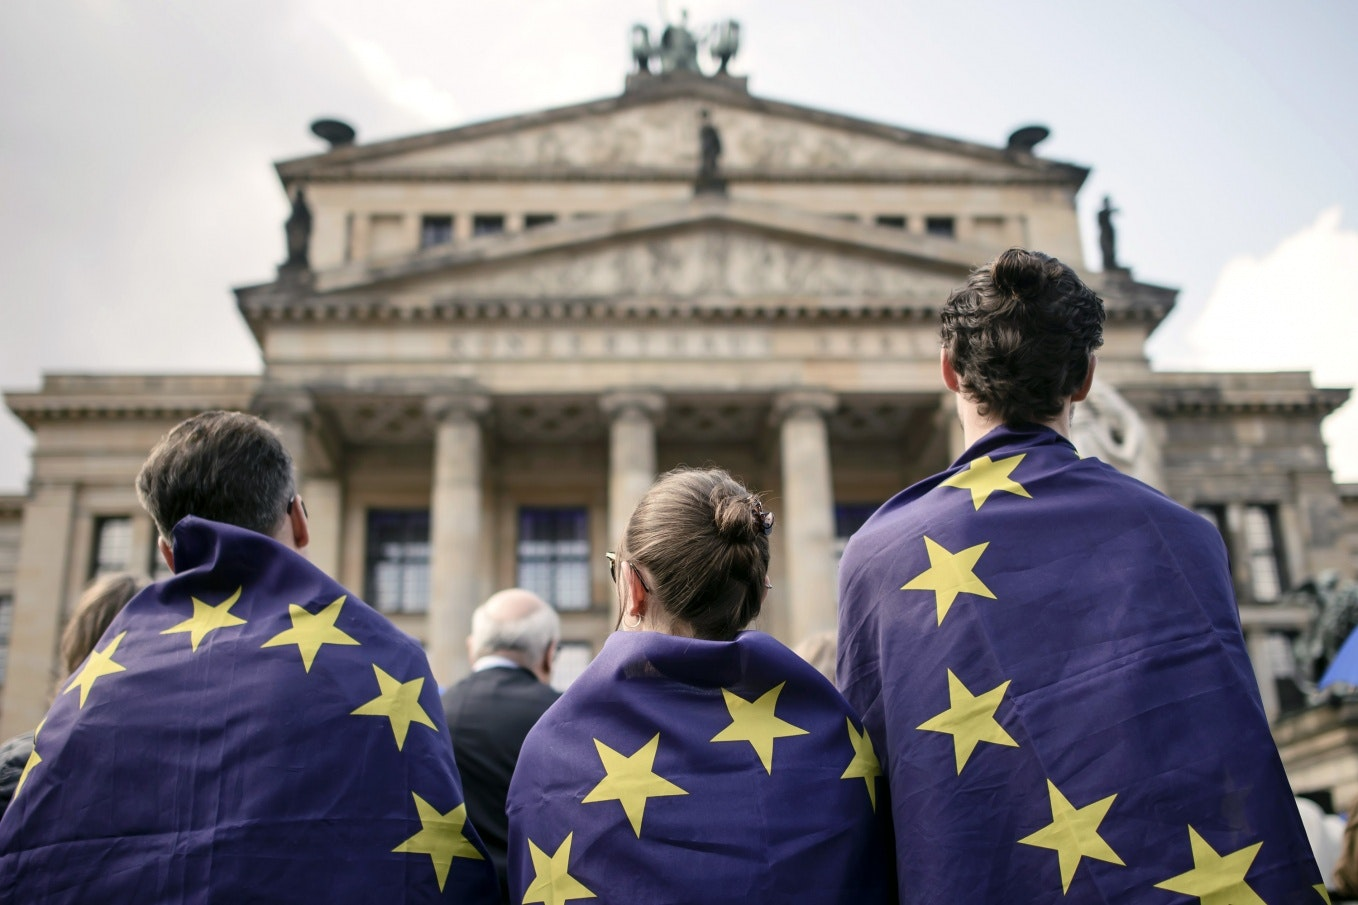 Three people wrapped in EU flags.